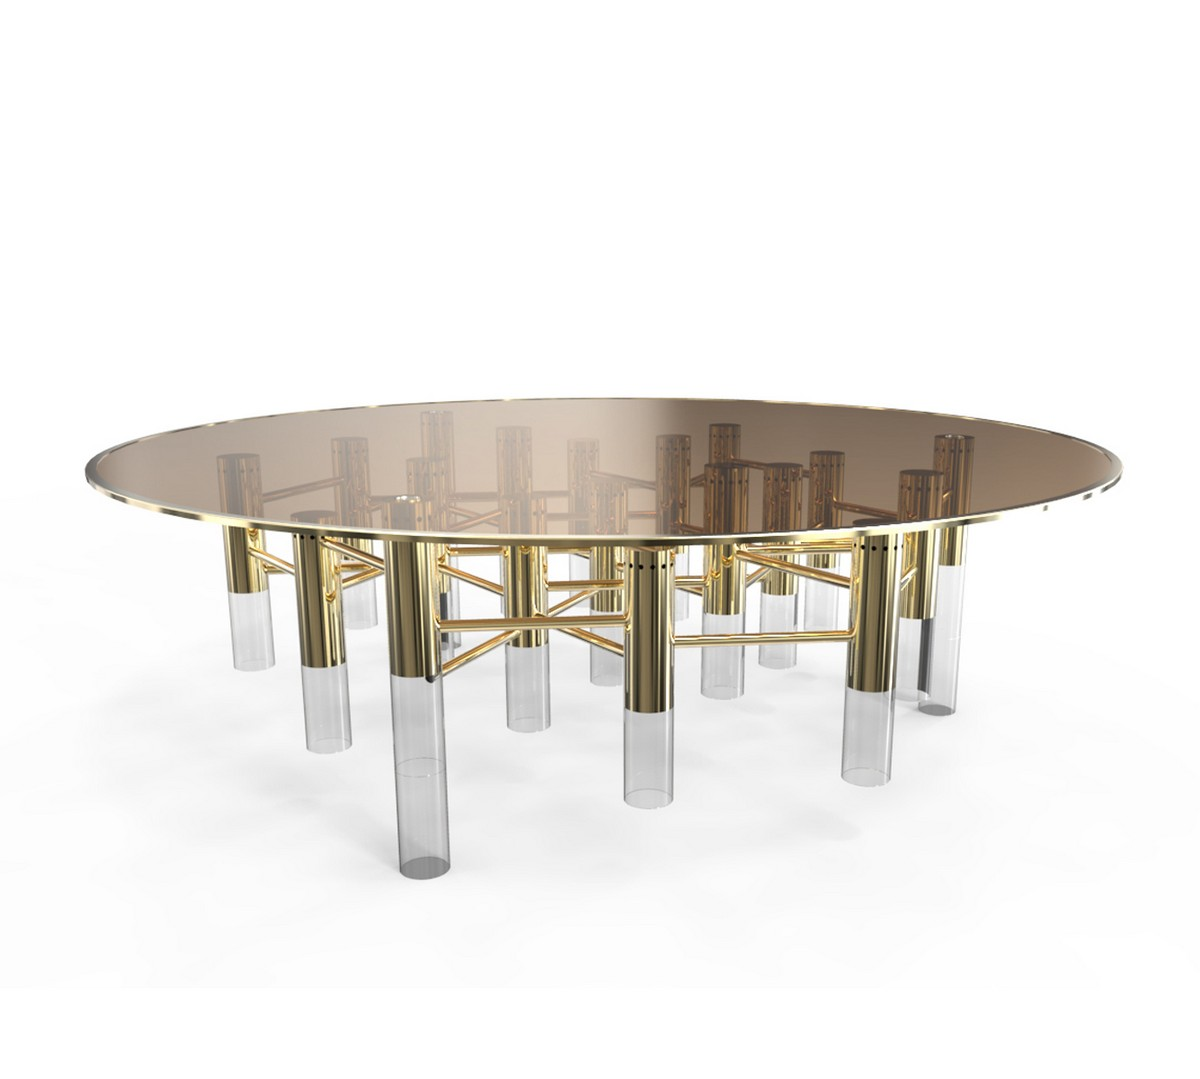 Top Luxury Coffee Tables (Part II) luxury coffee tables Top Luxury Coffee Tables (Part II) konstantin2